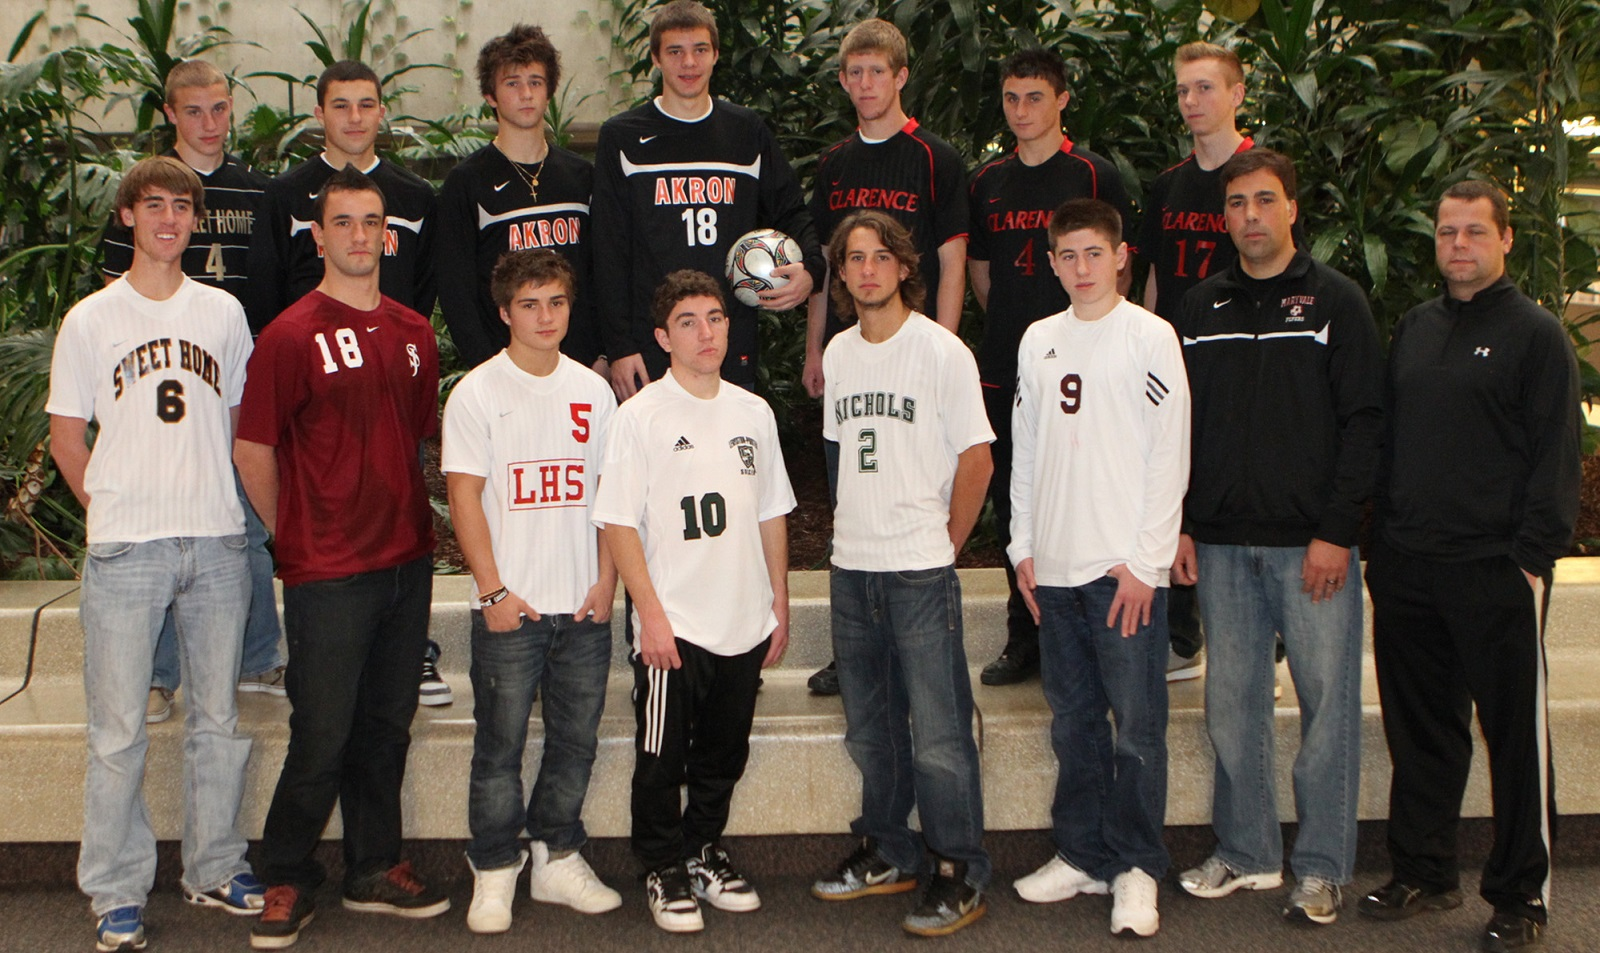 All-Western New York Boys Soccer, 2010. Front row, left to right: Connor Orrico -Sweet Home, Julian Olin -St. Joe's, P.J. Heist - Lancaster, Frankie Valente - Lew-Port, Chris Walter -Nichols, Shawn Powers - Maryvale, Coach of the Year Maryvale Tom Staebell, Referee of the Year Shane Magaris. Top Row: Liam Callahan - Sweet Home, Jaime Salcedo - Akron, Sam Torreli - Akron, Nathan Borchert - Akron, Ryan Schroen - Clarence, Derek Maier - Clarence, Chris Berardi - Clarence. (John Hickey/Buffalo News)